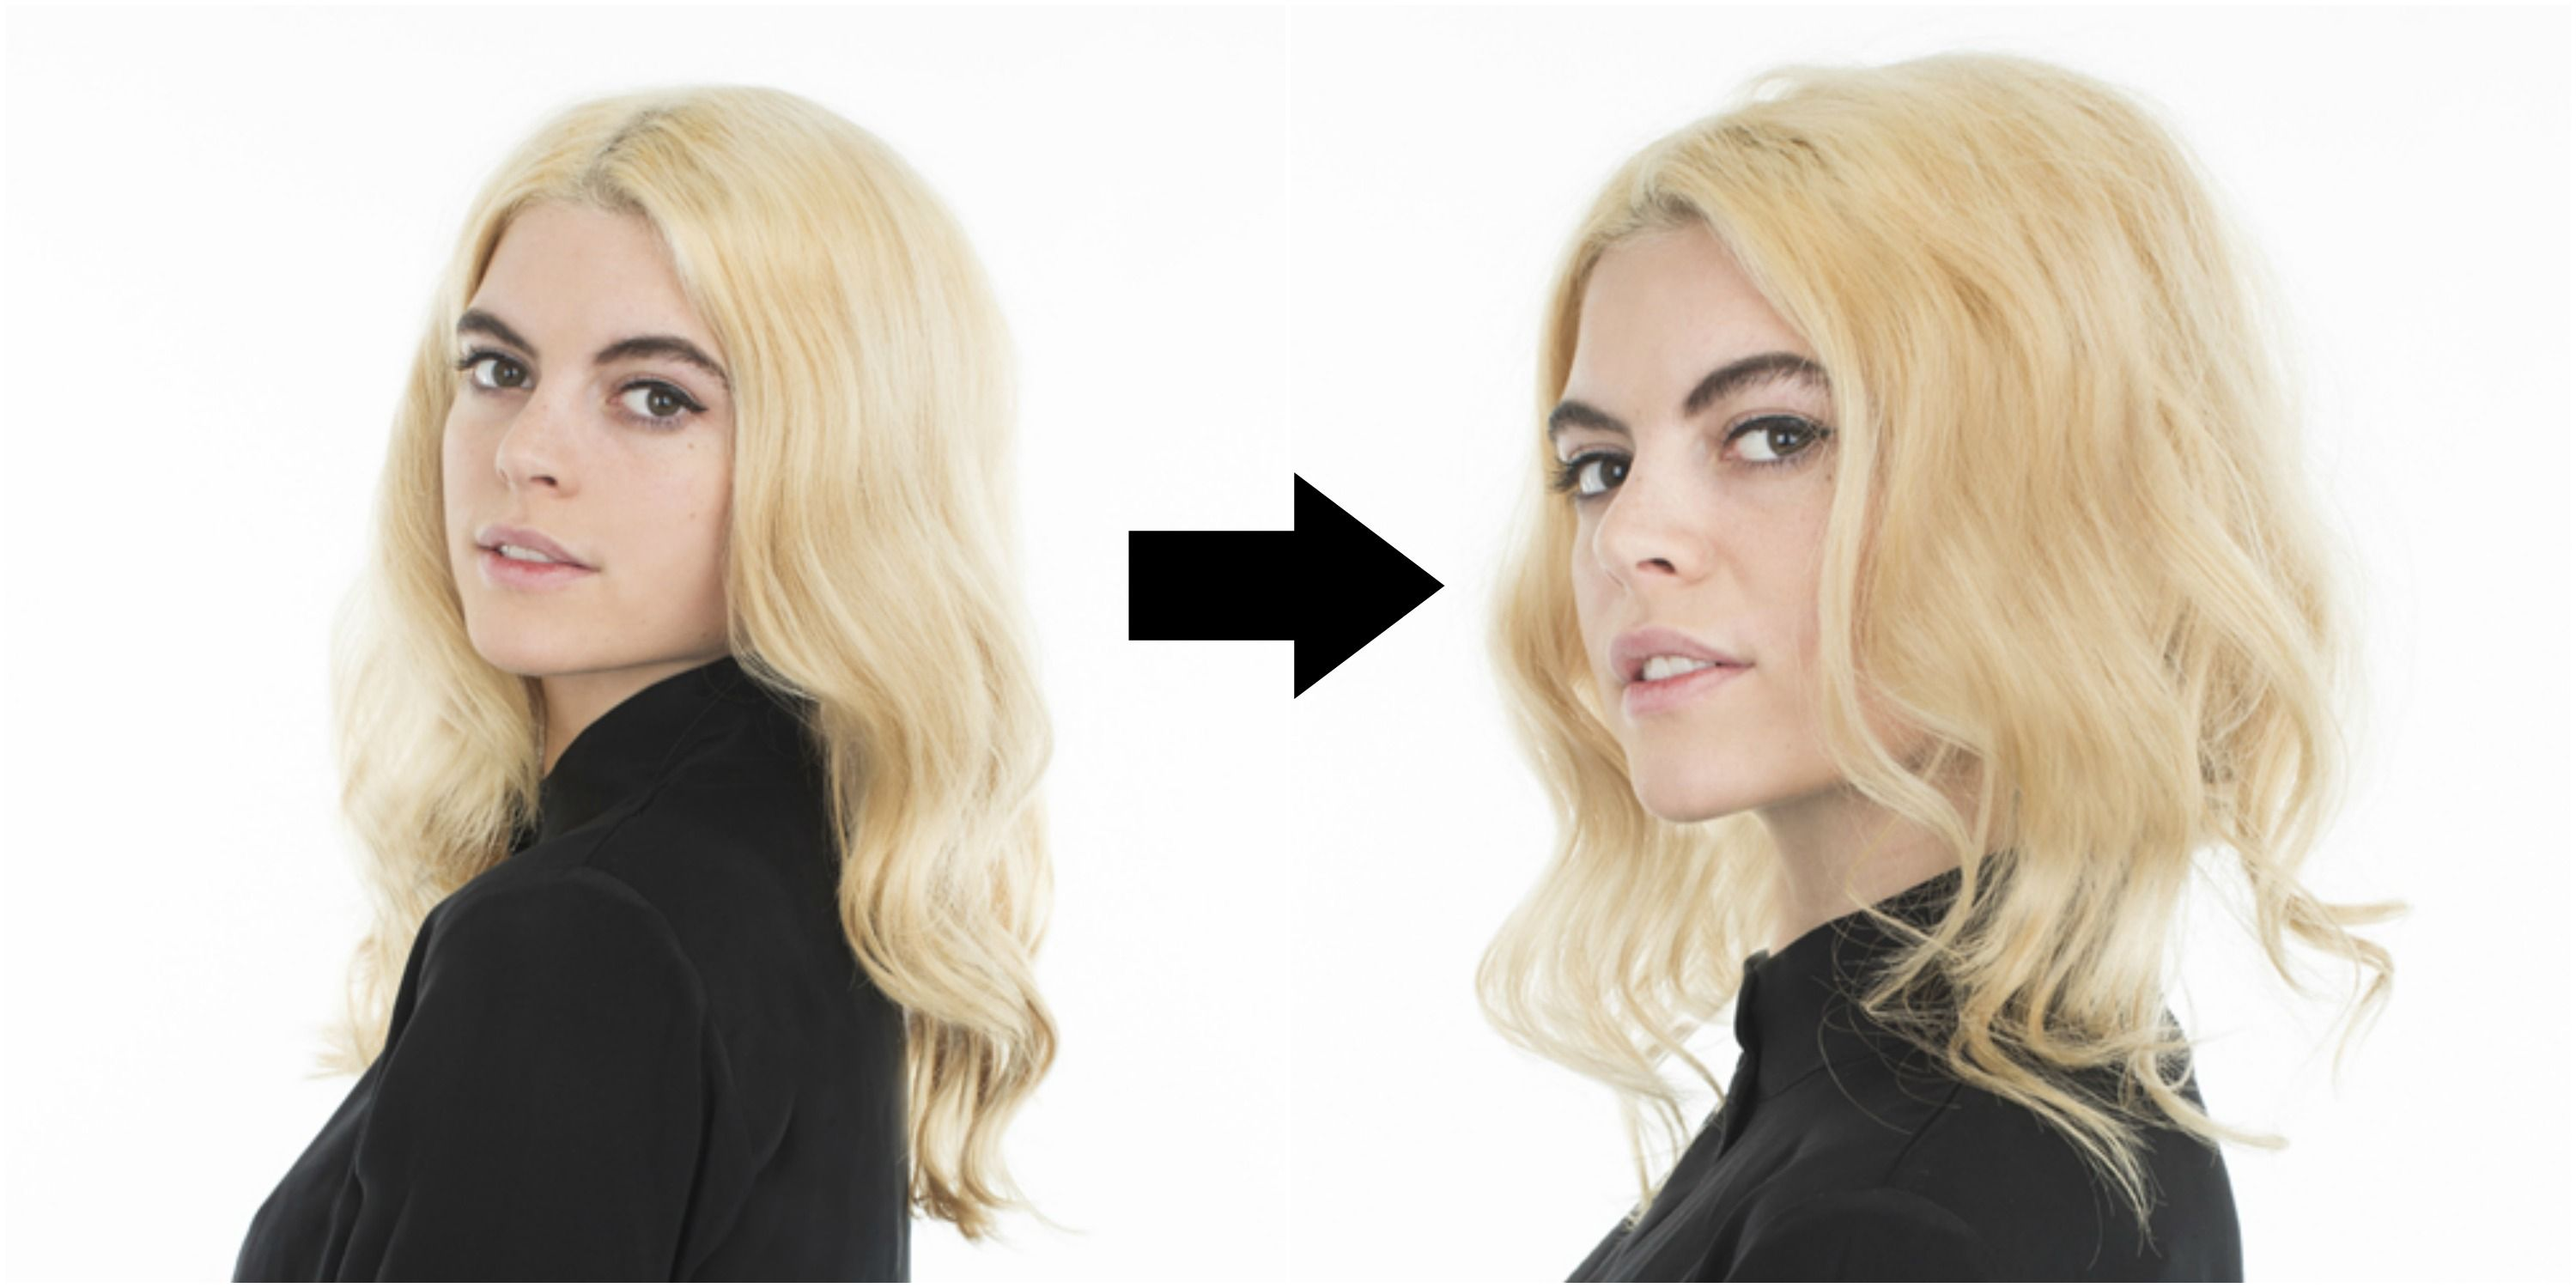 How to Make Hair Look Shorter Without Cutting It — Faux Bob Tutorial